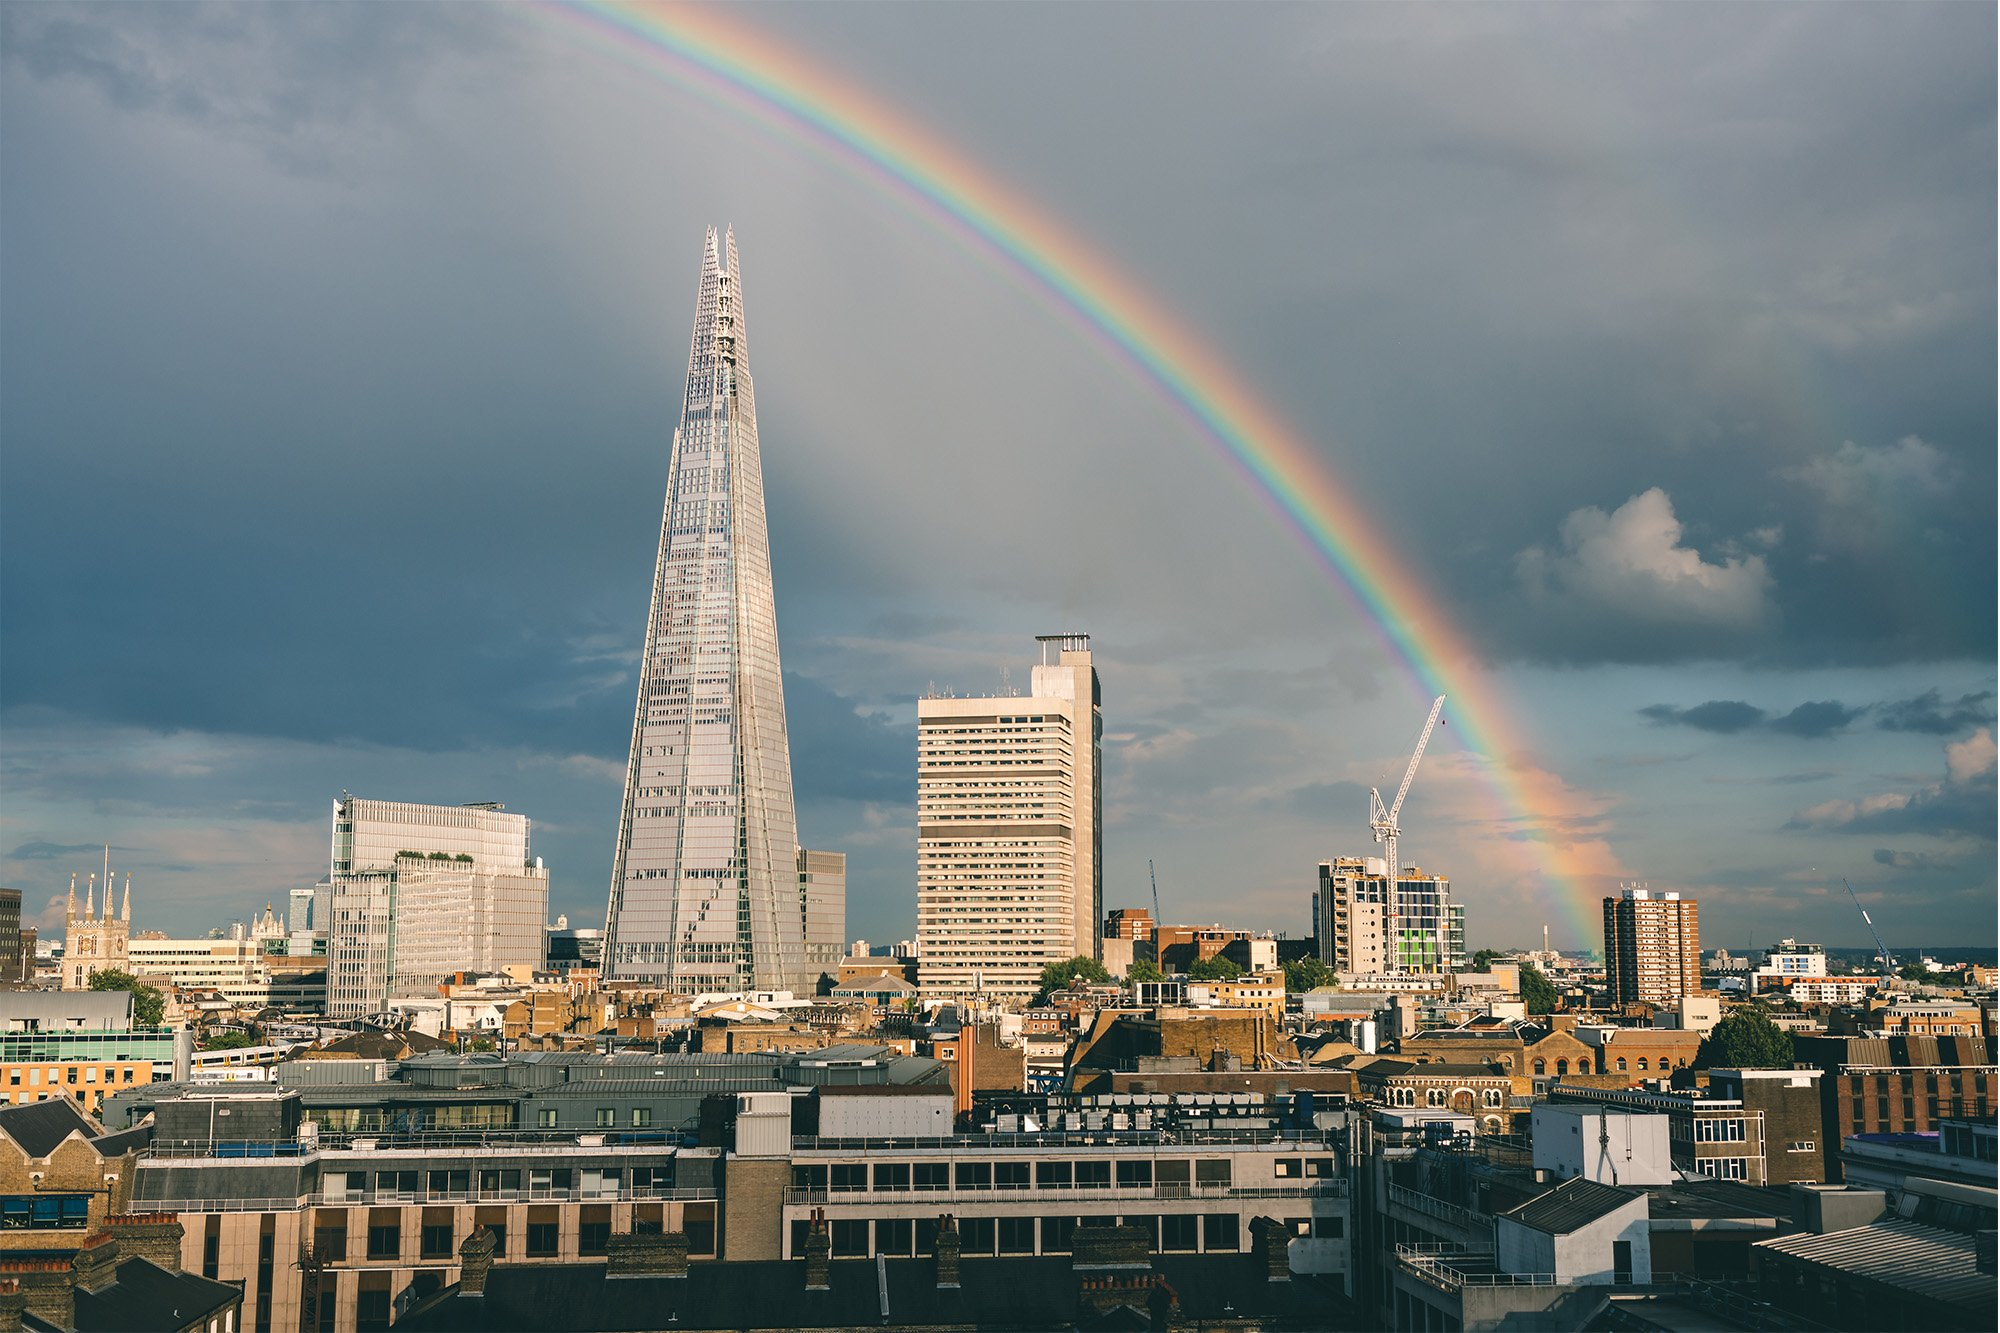 Testing the Sony A7R II – A rainbow view of The Shard in London